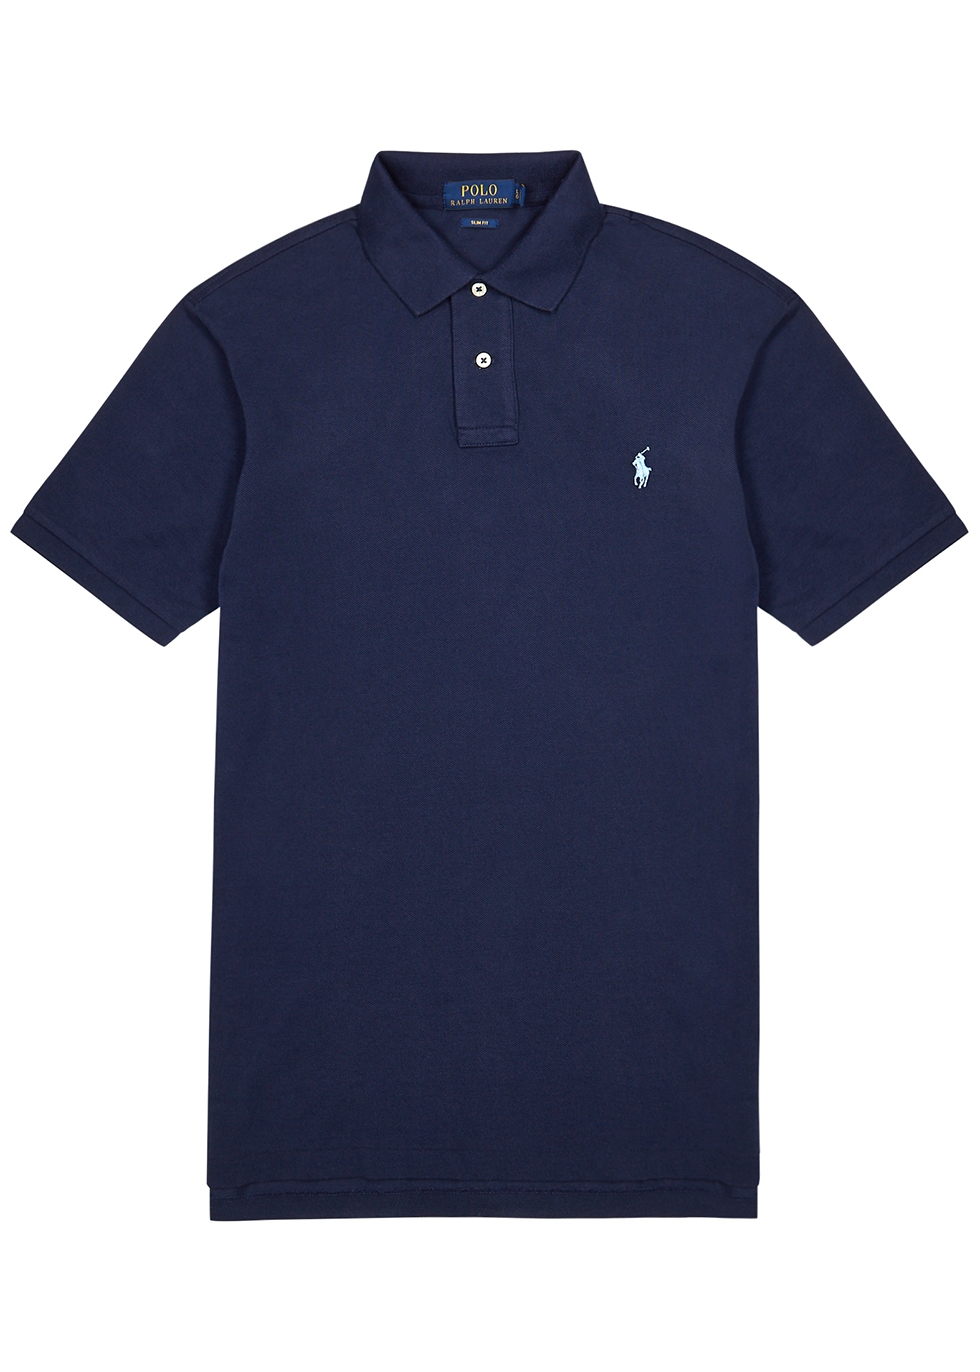 Navy piqué-cotton polo shirt